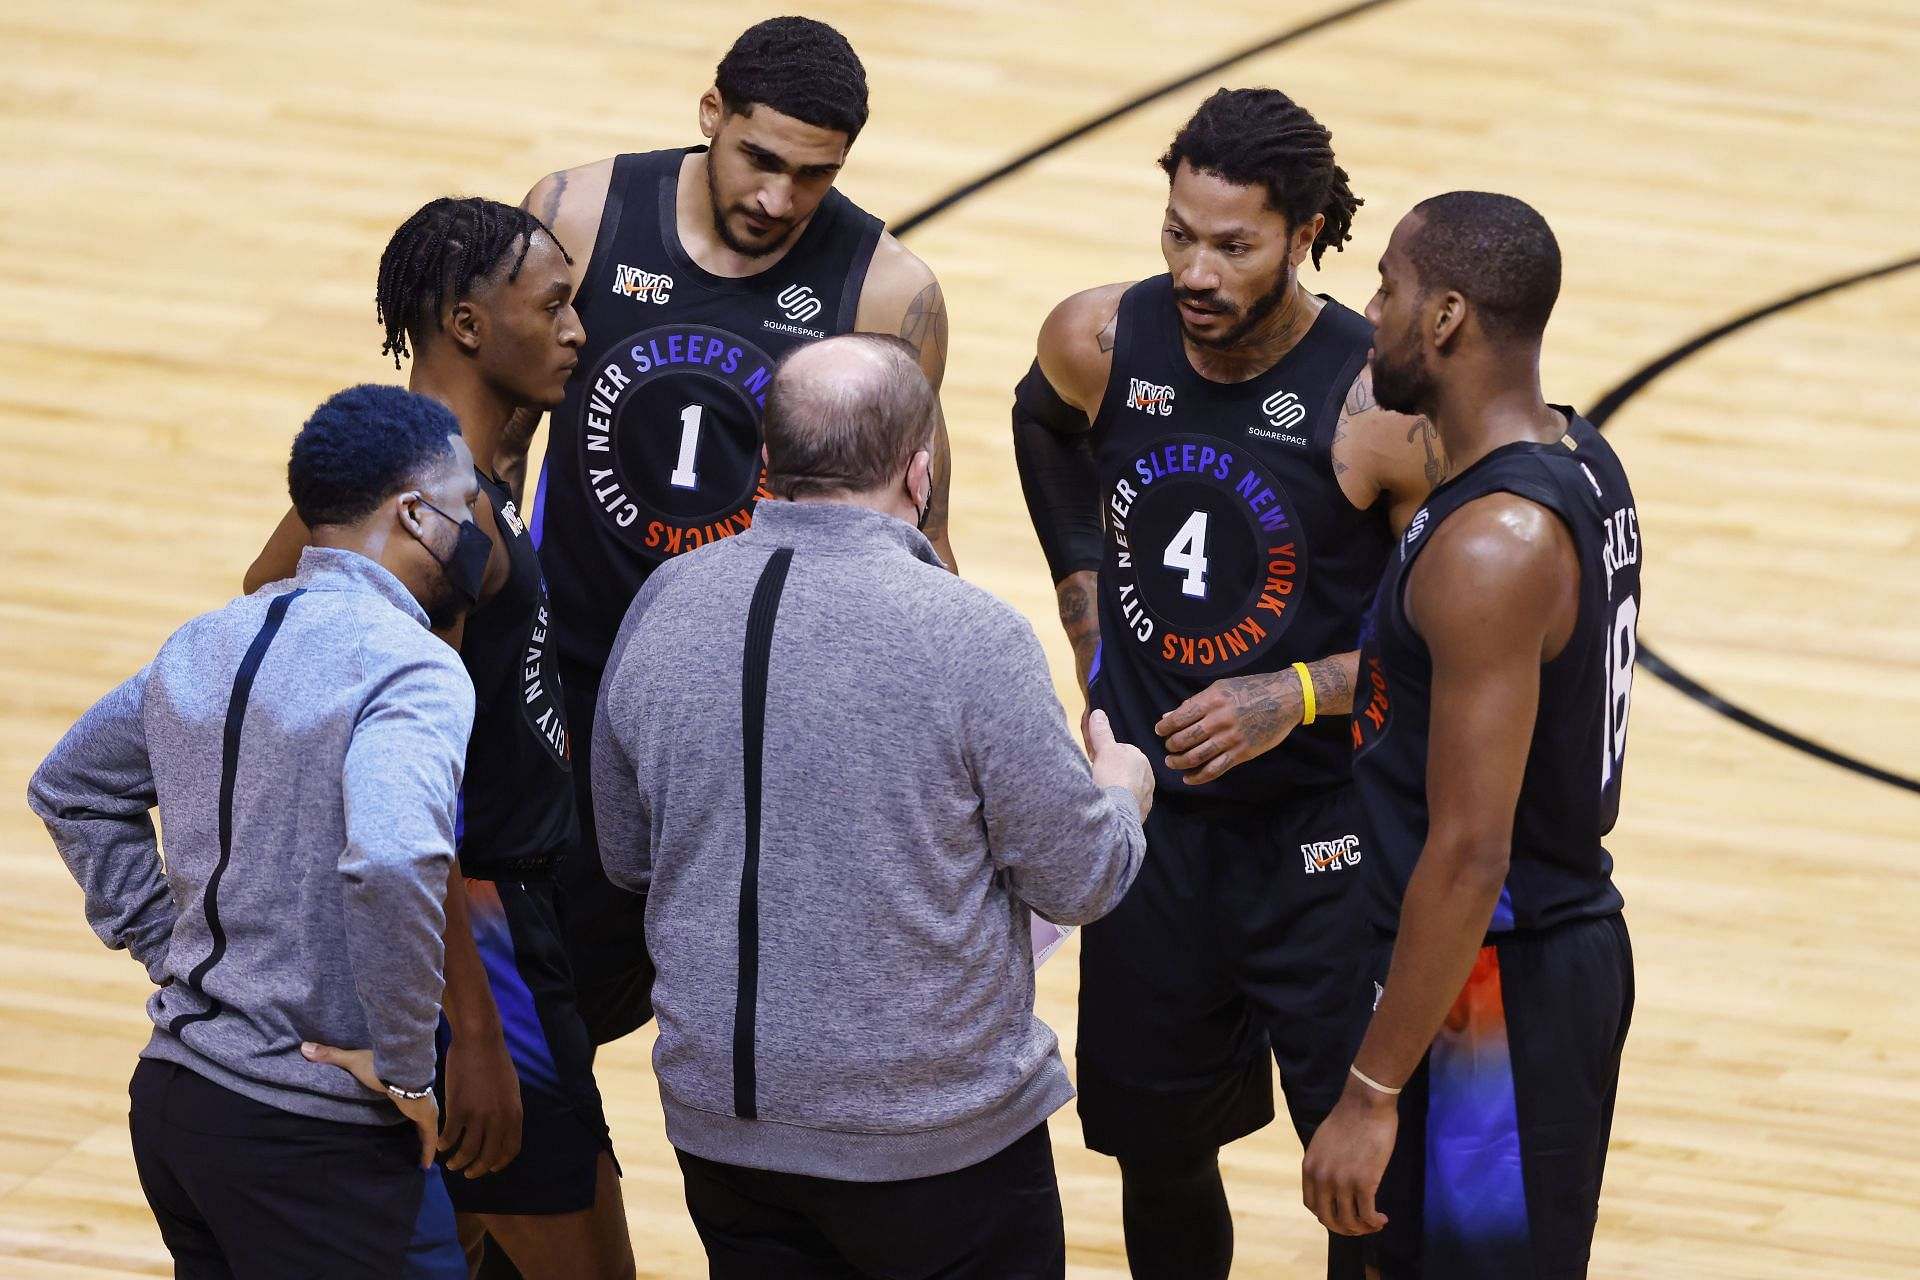 Tom Thibodeau calls Derrick Rose and the New York Knicks to a huddle in a game against the Chicago Bulls